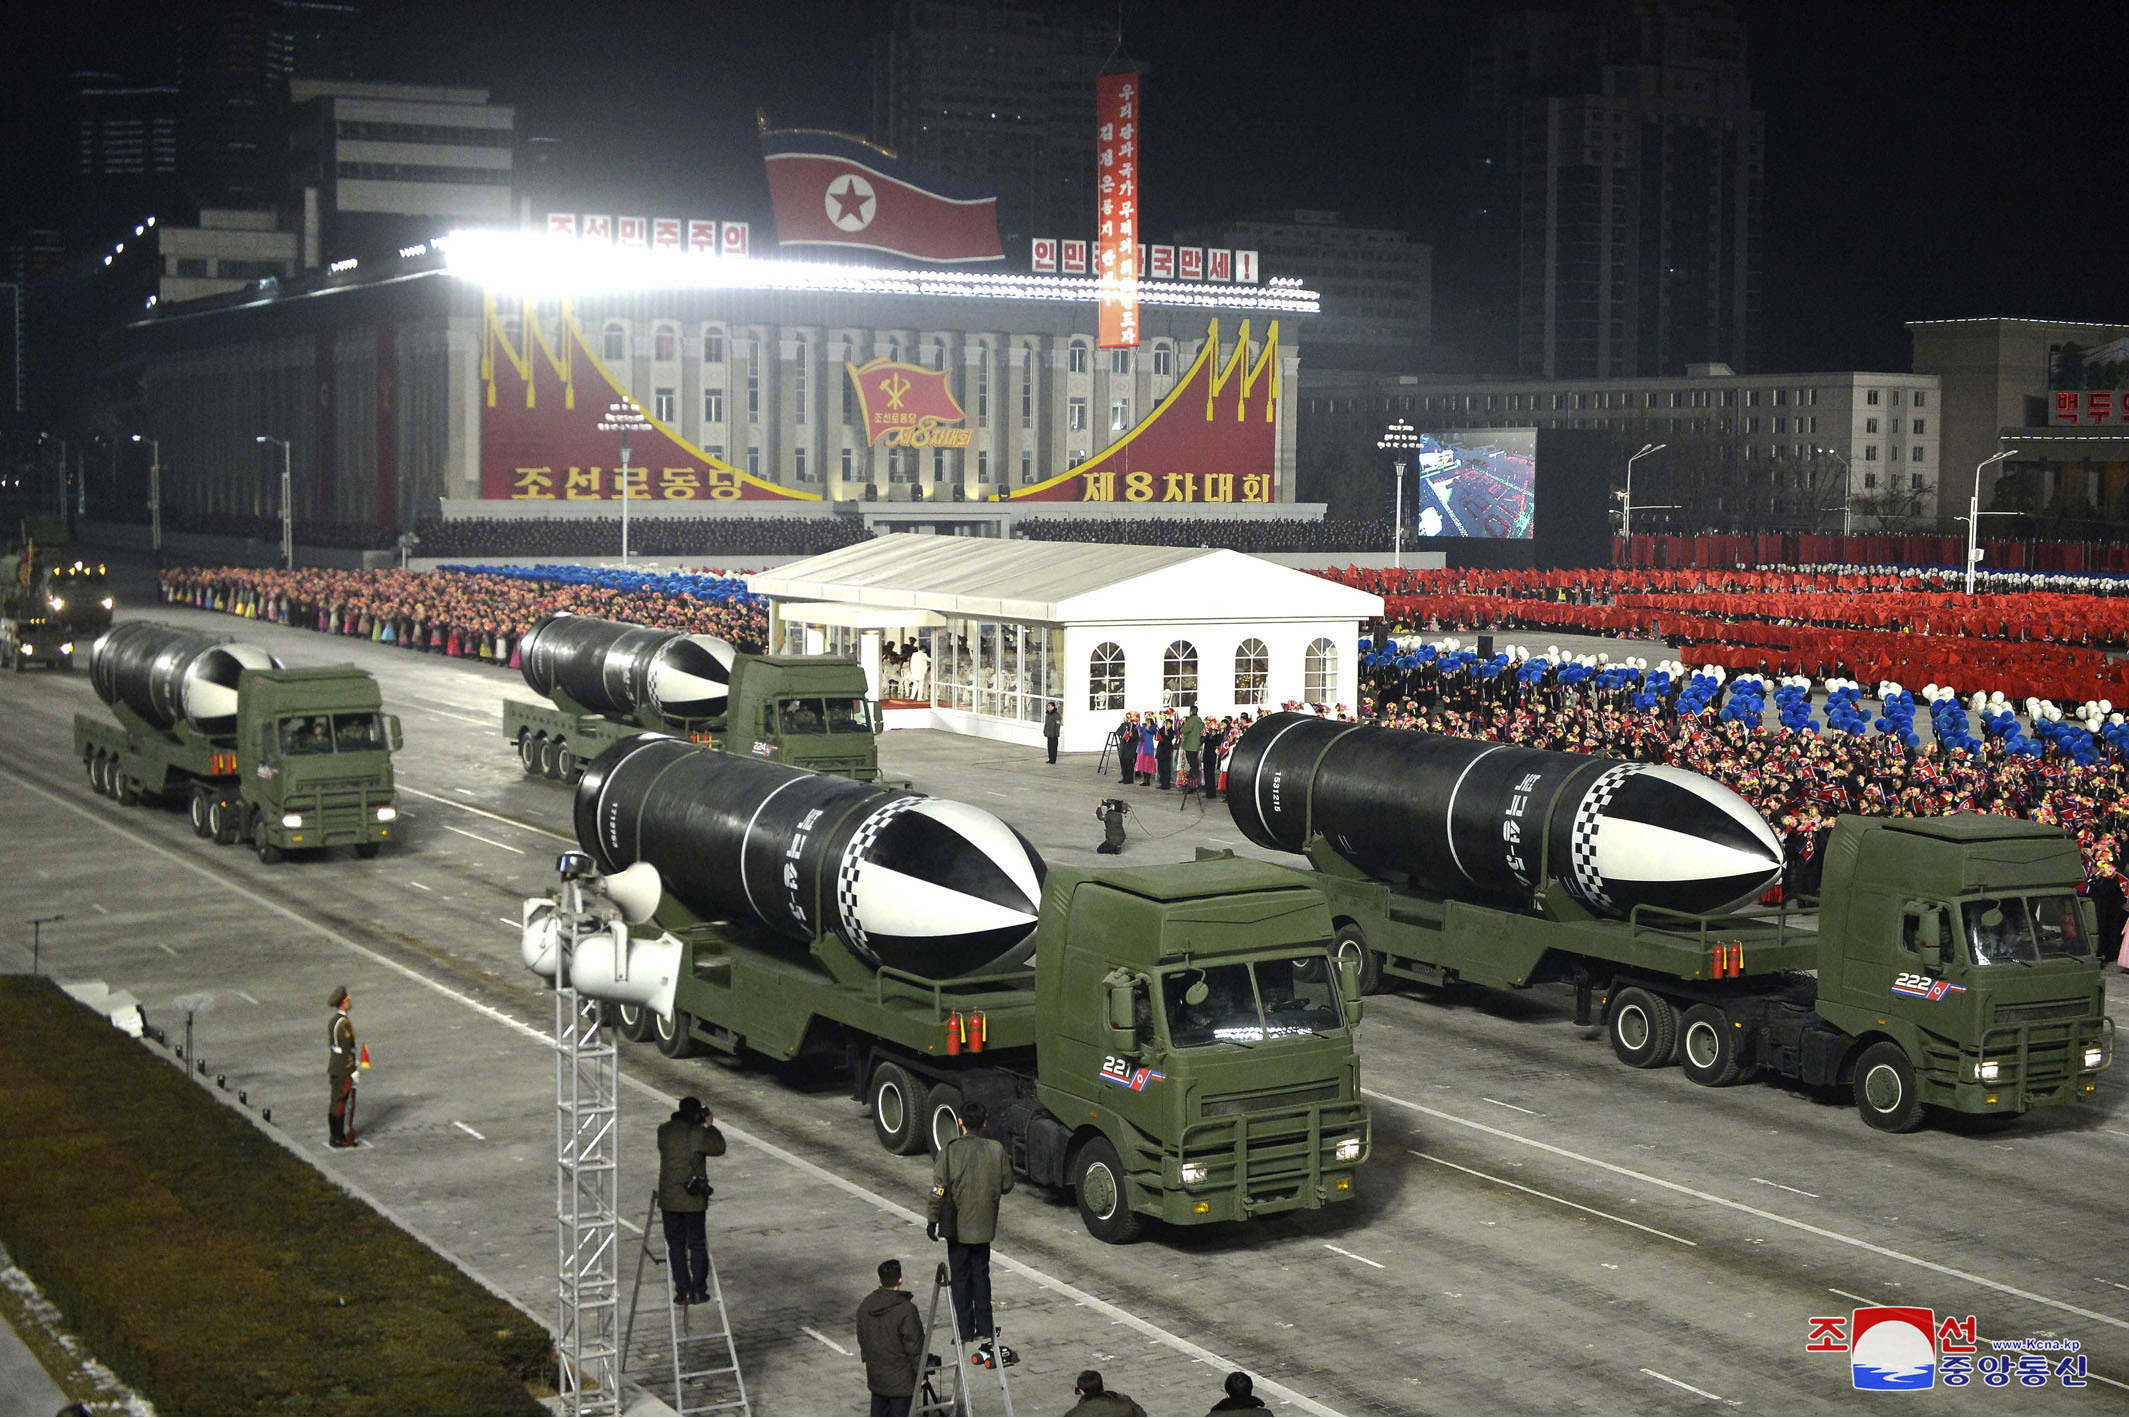 North Korea demonstrates new missile in military parade